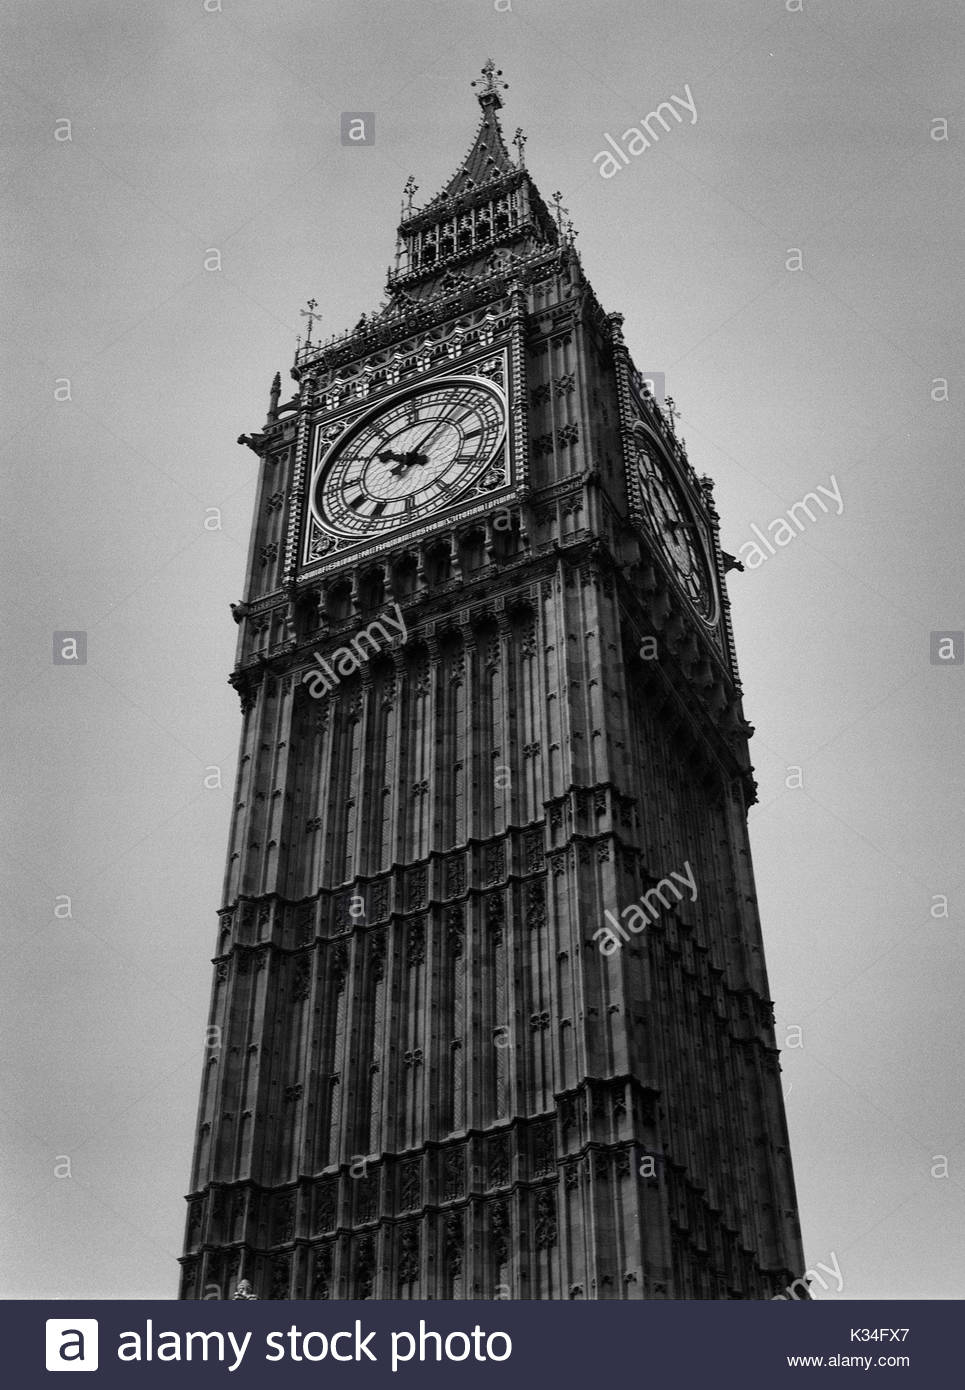 Low Angle View of Big Ben, House of Parliament, London, England, UK - Stock Image